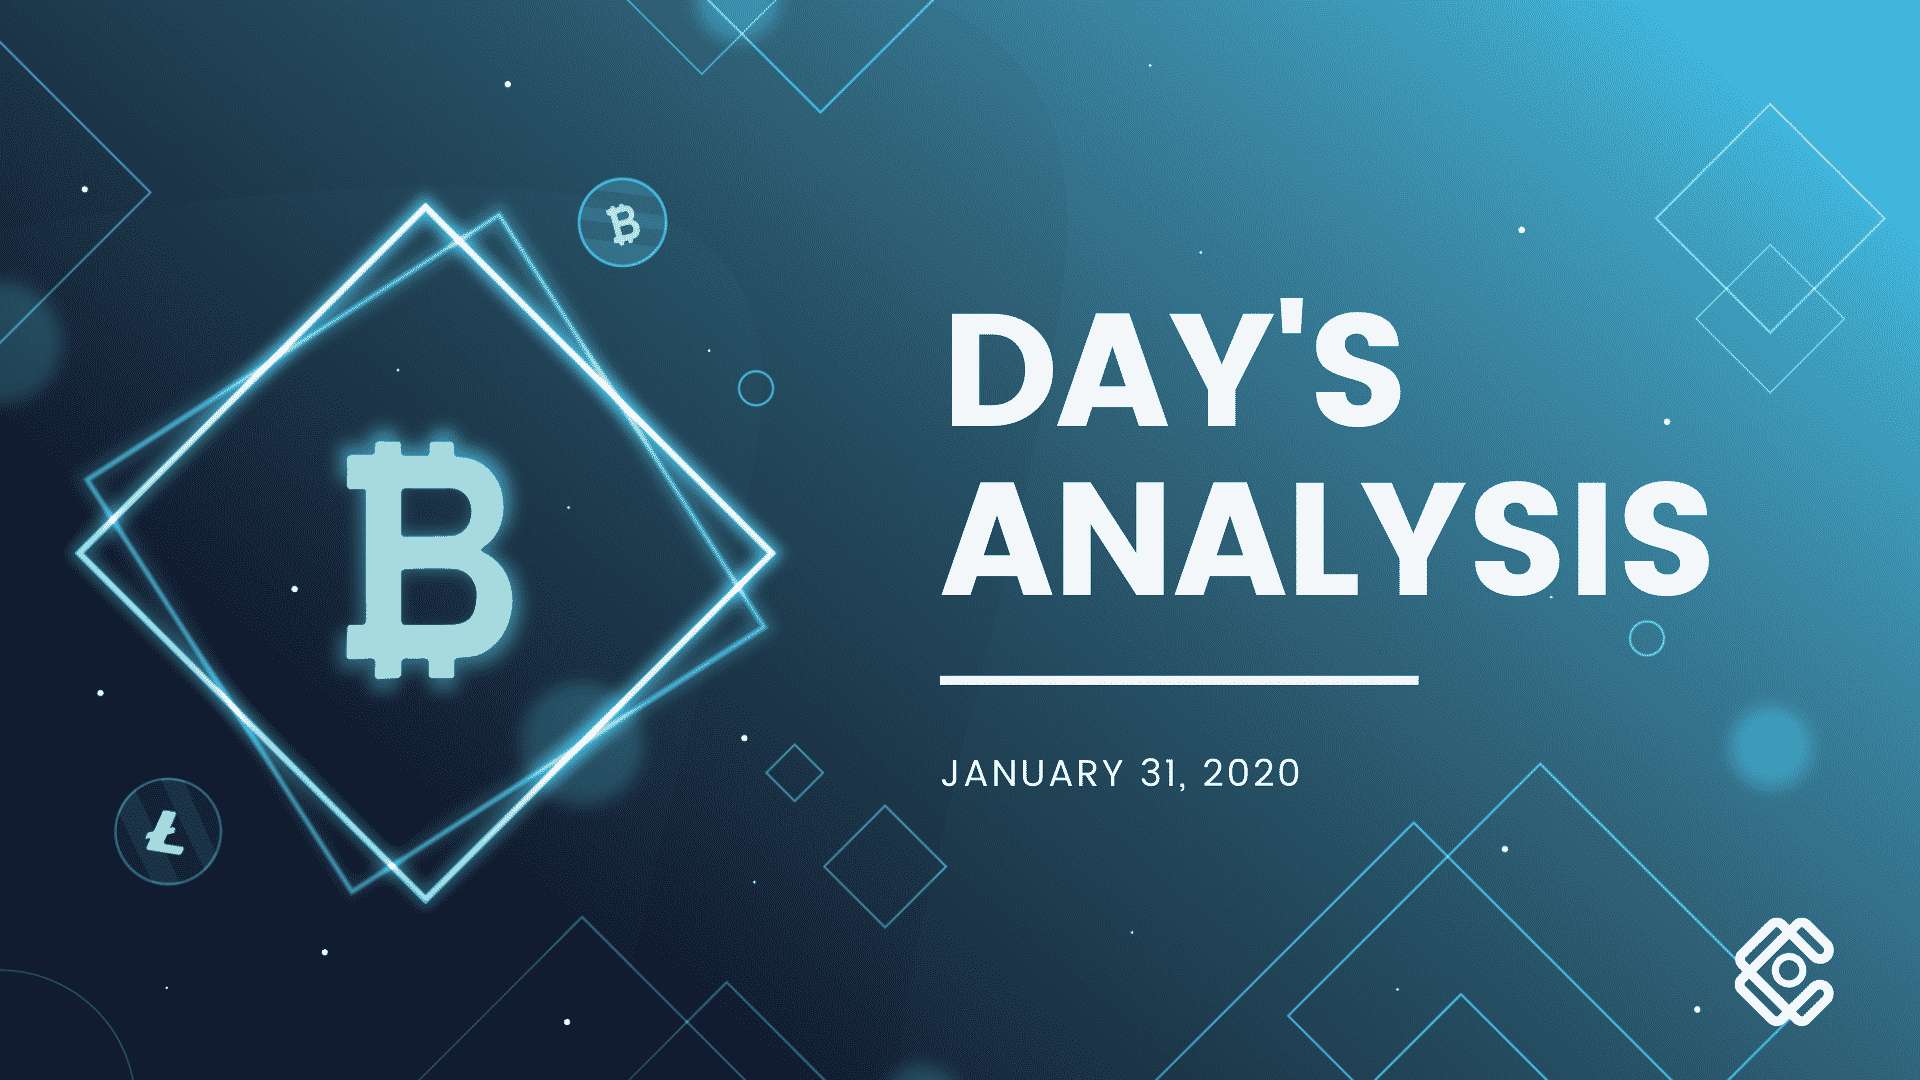 Market Analysis of January 31, 2020